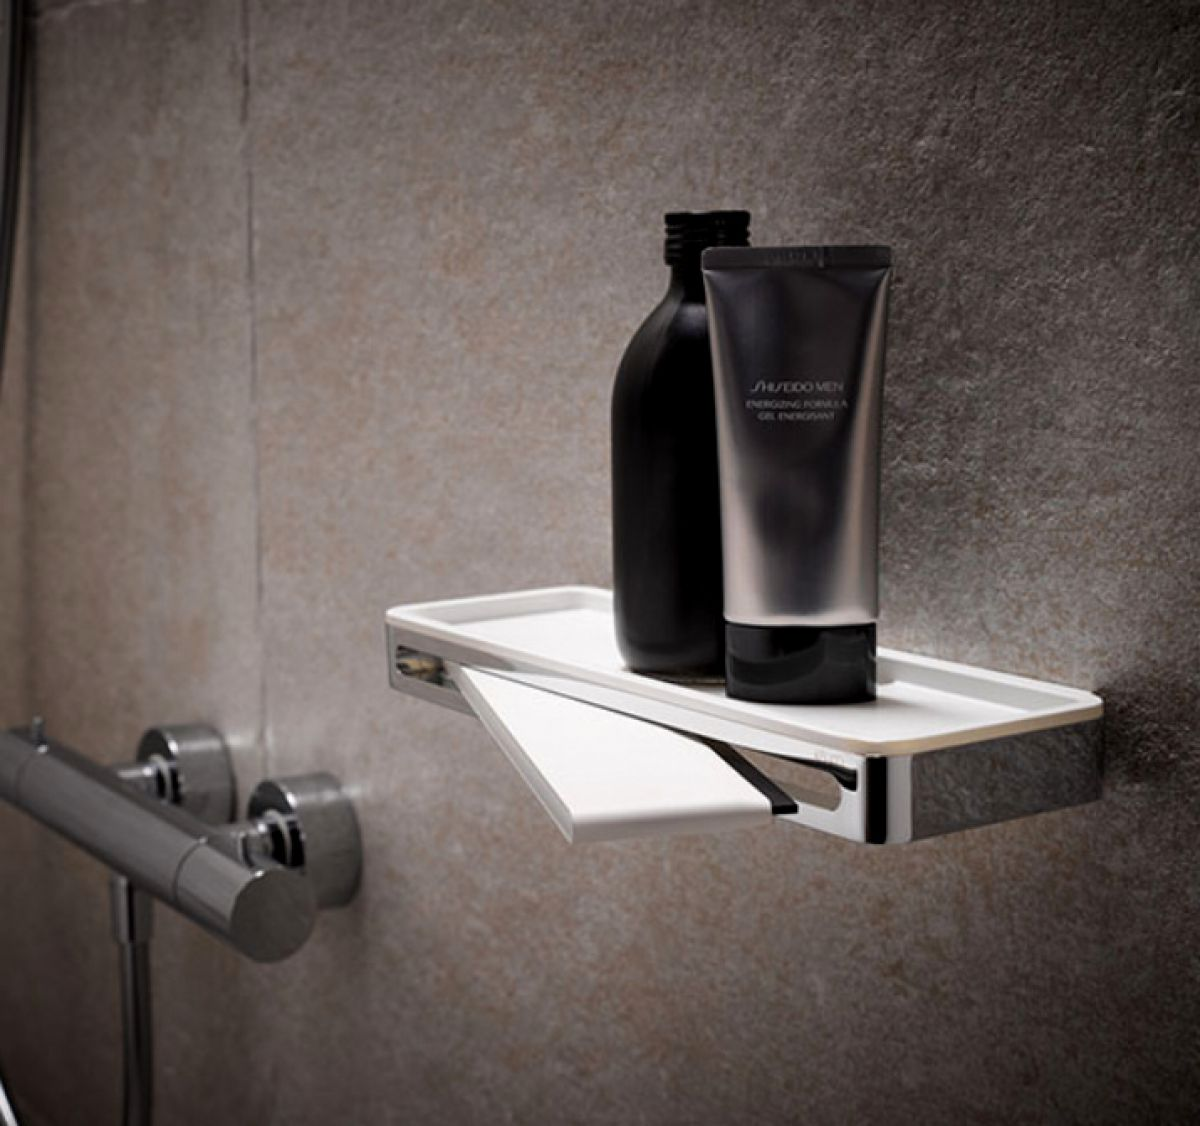 Keuco Plan Shower Basket With Glass Wiper Uk Bathrooms